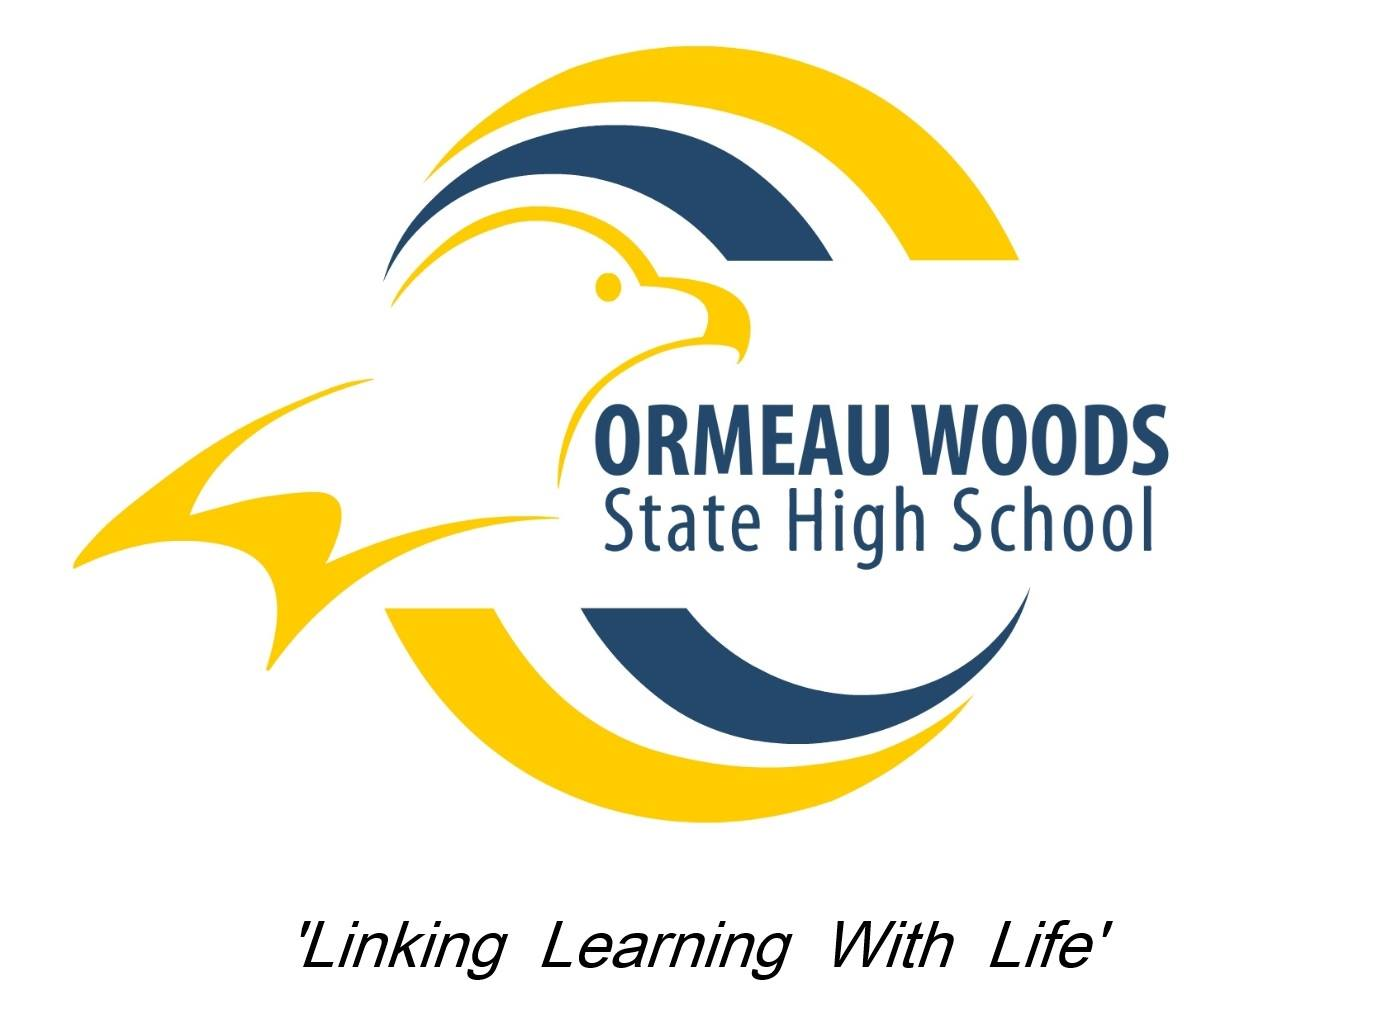 Ormeau Woods State High School校徽